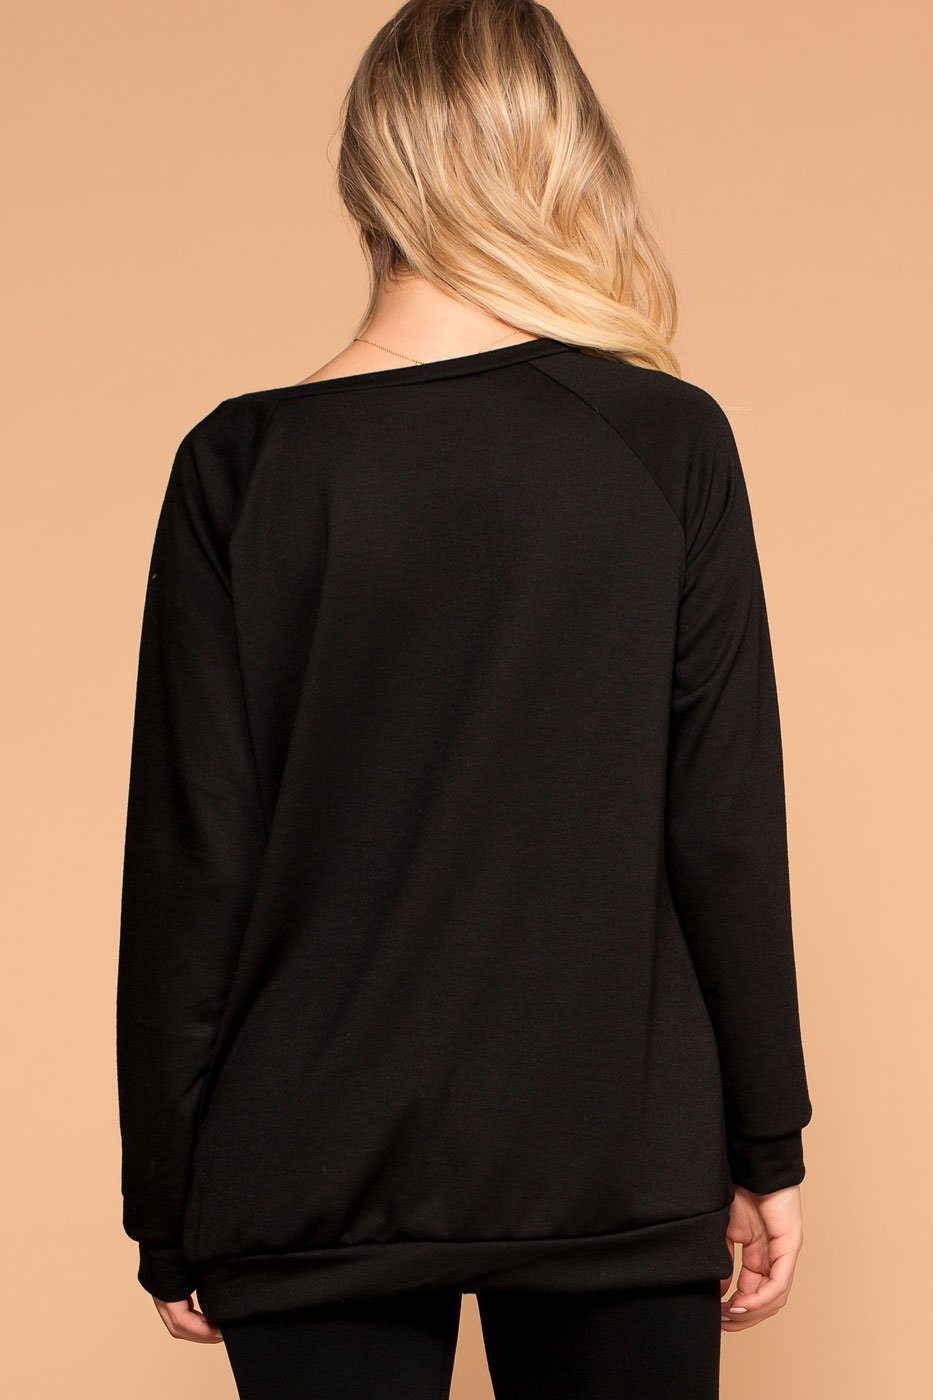 Priceless | Sunday Funday | Black Sweatshirt Top | Womens